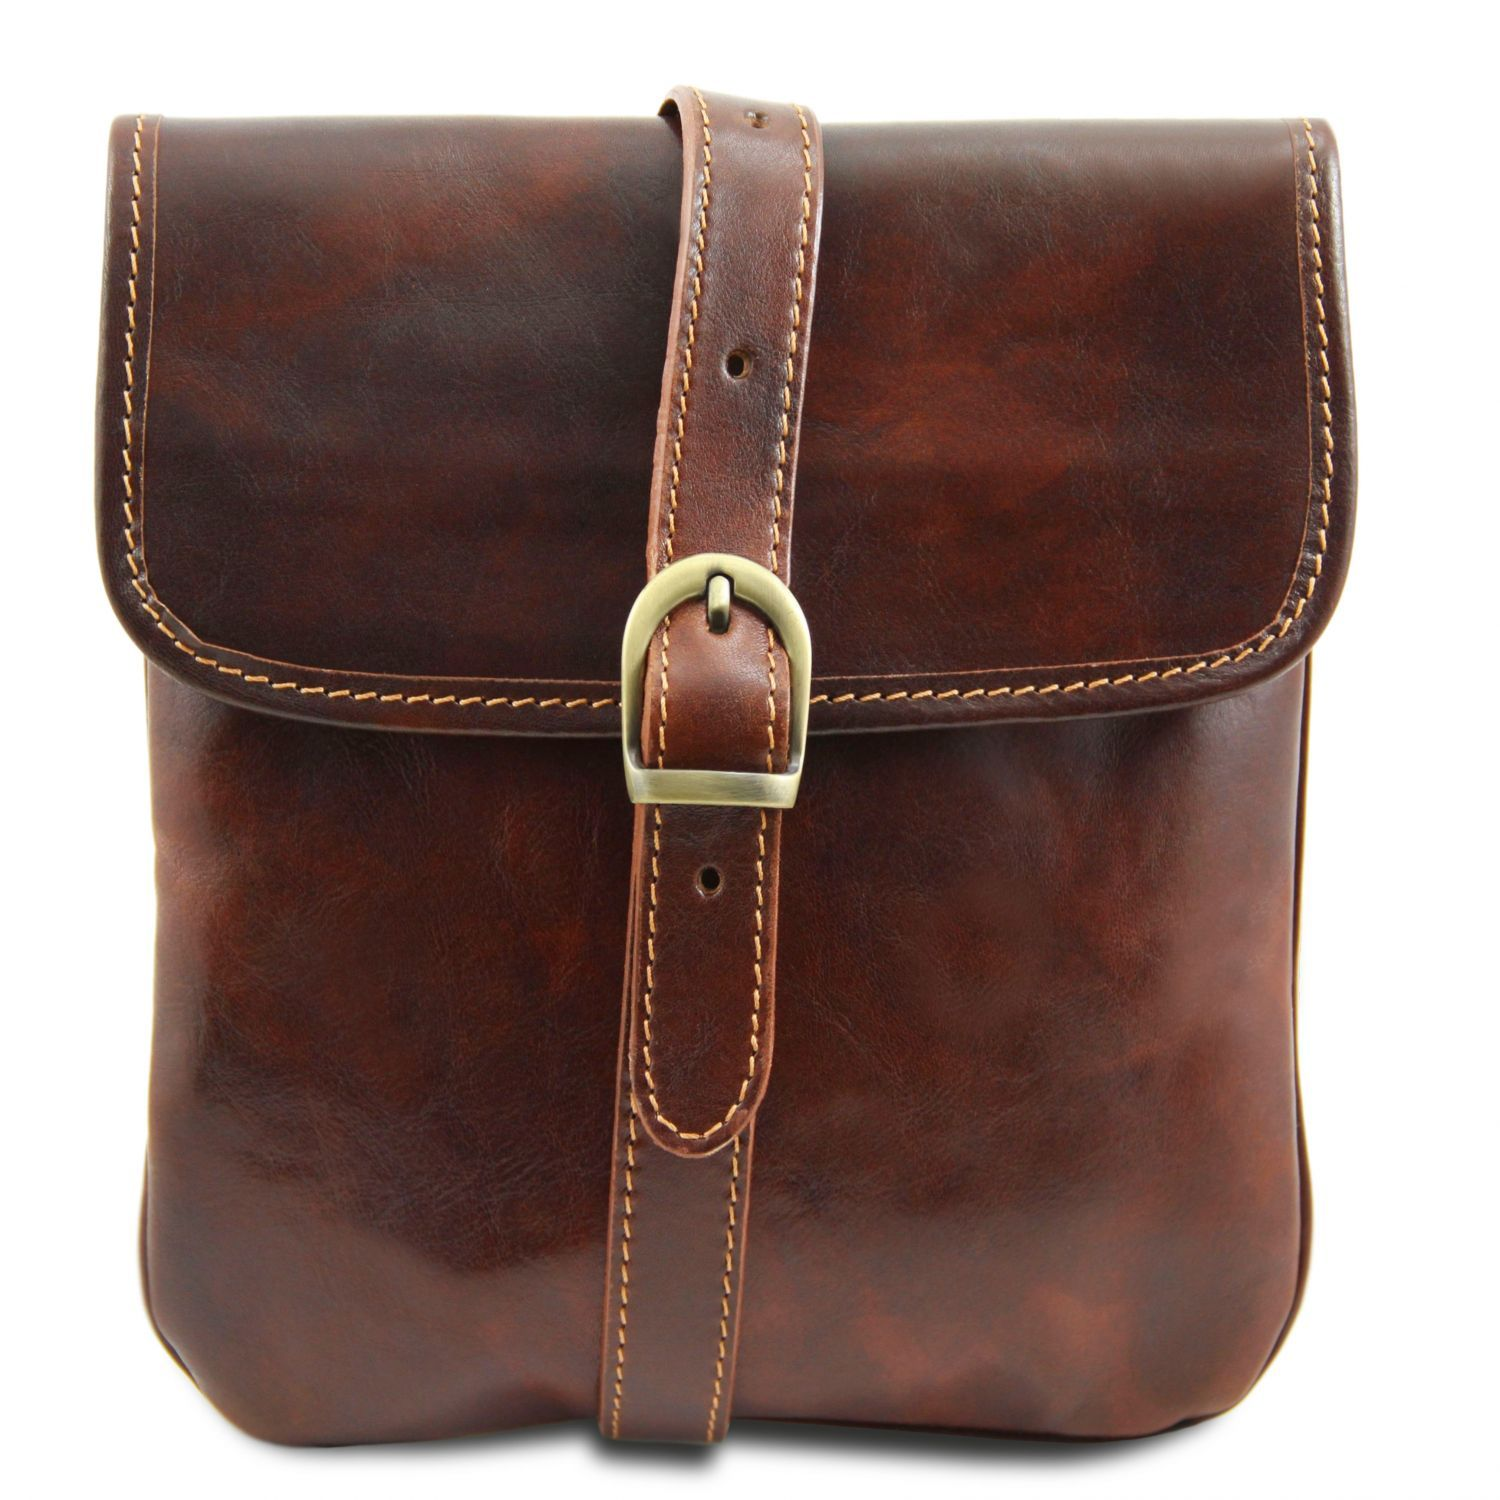 Joe - Leather Crossbody Bag (TL140987) - Leather bags for men | DILUSSOBAGS